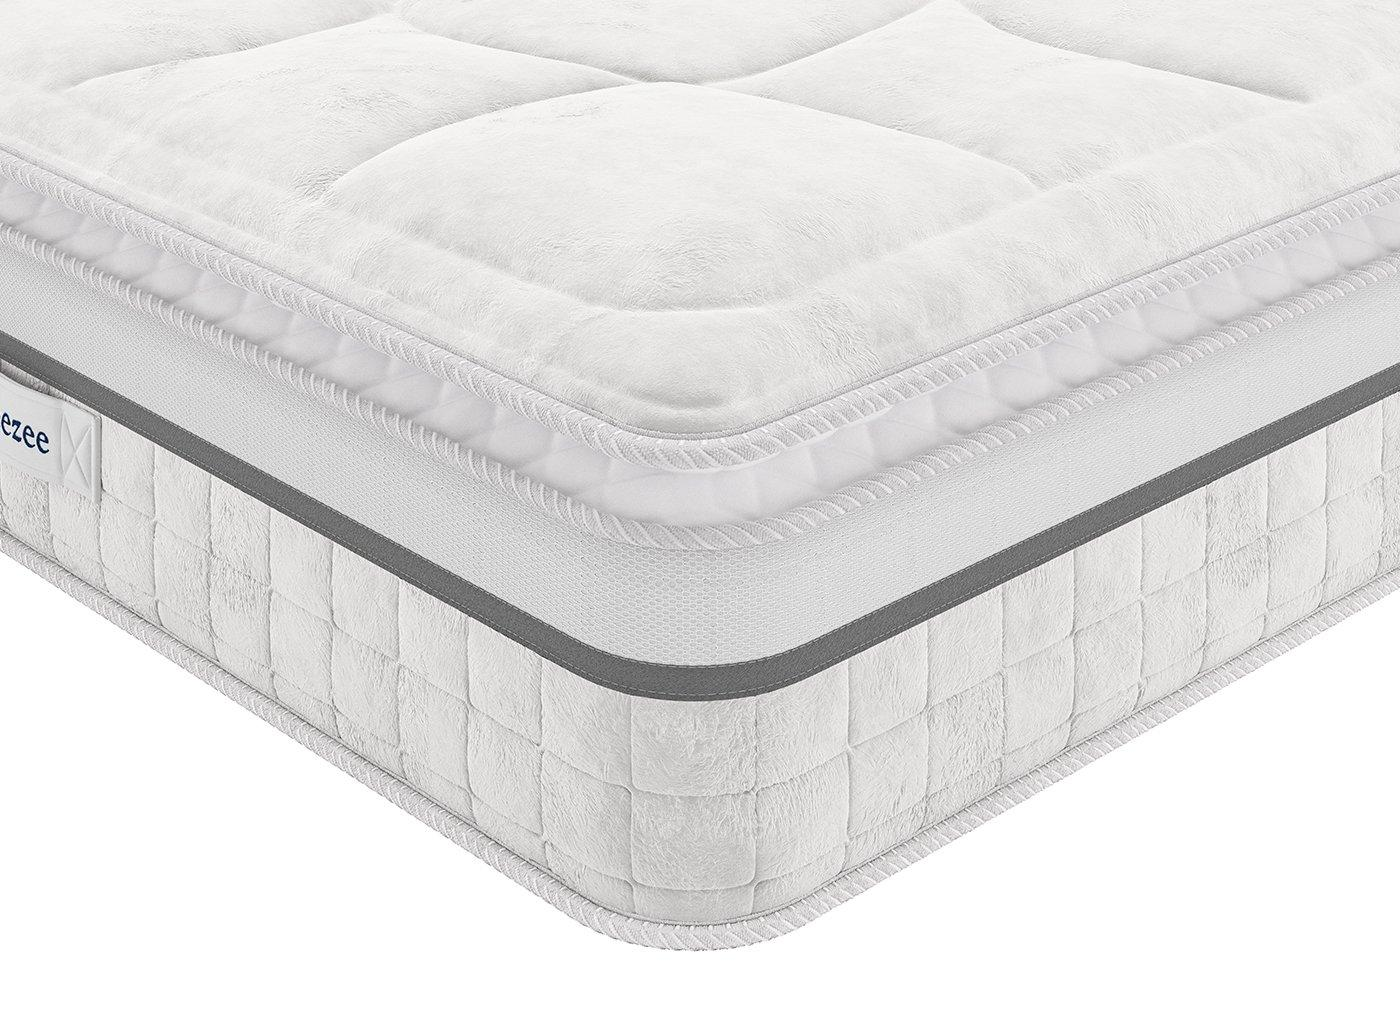 Sleepeezee Claremont D Mattress 4'6 Double